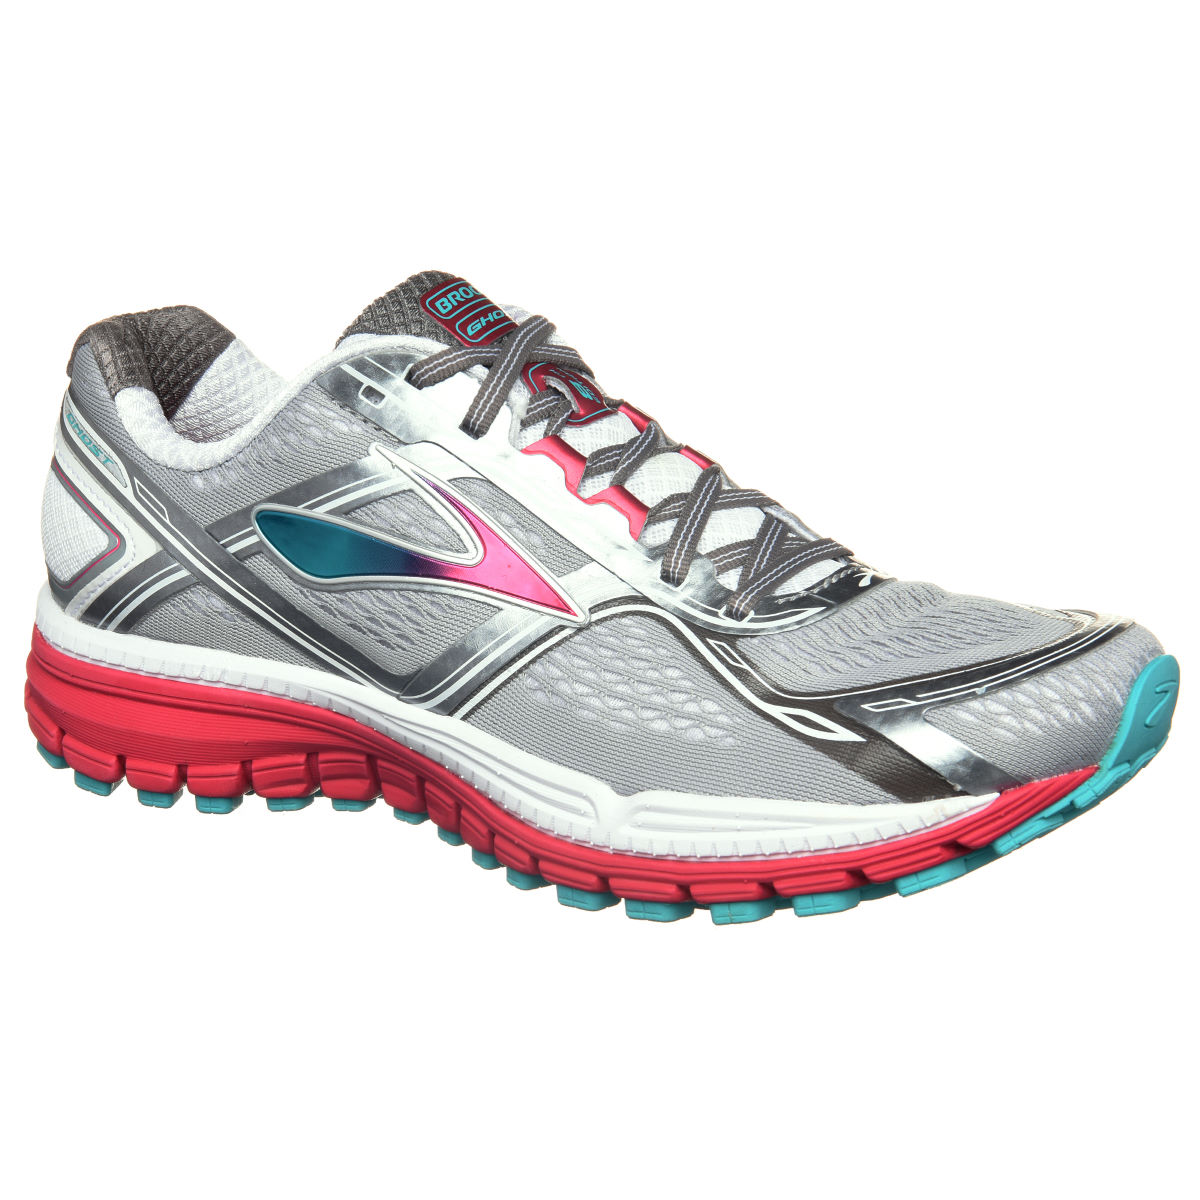 Chaussures Femme Brooks Ghost 8 - UK 4 MetallicCharcoal/Bri Chaussures de running amorties